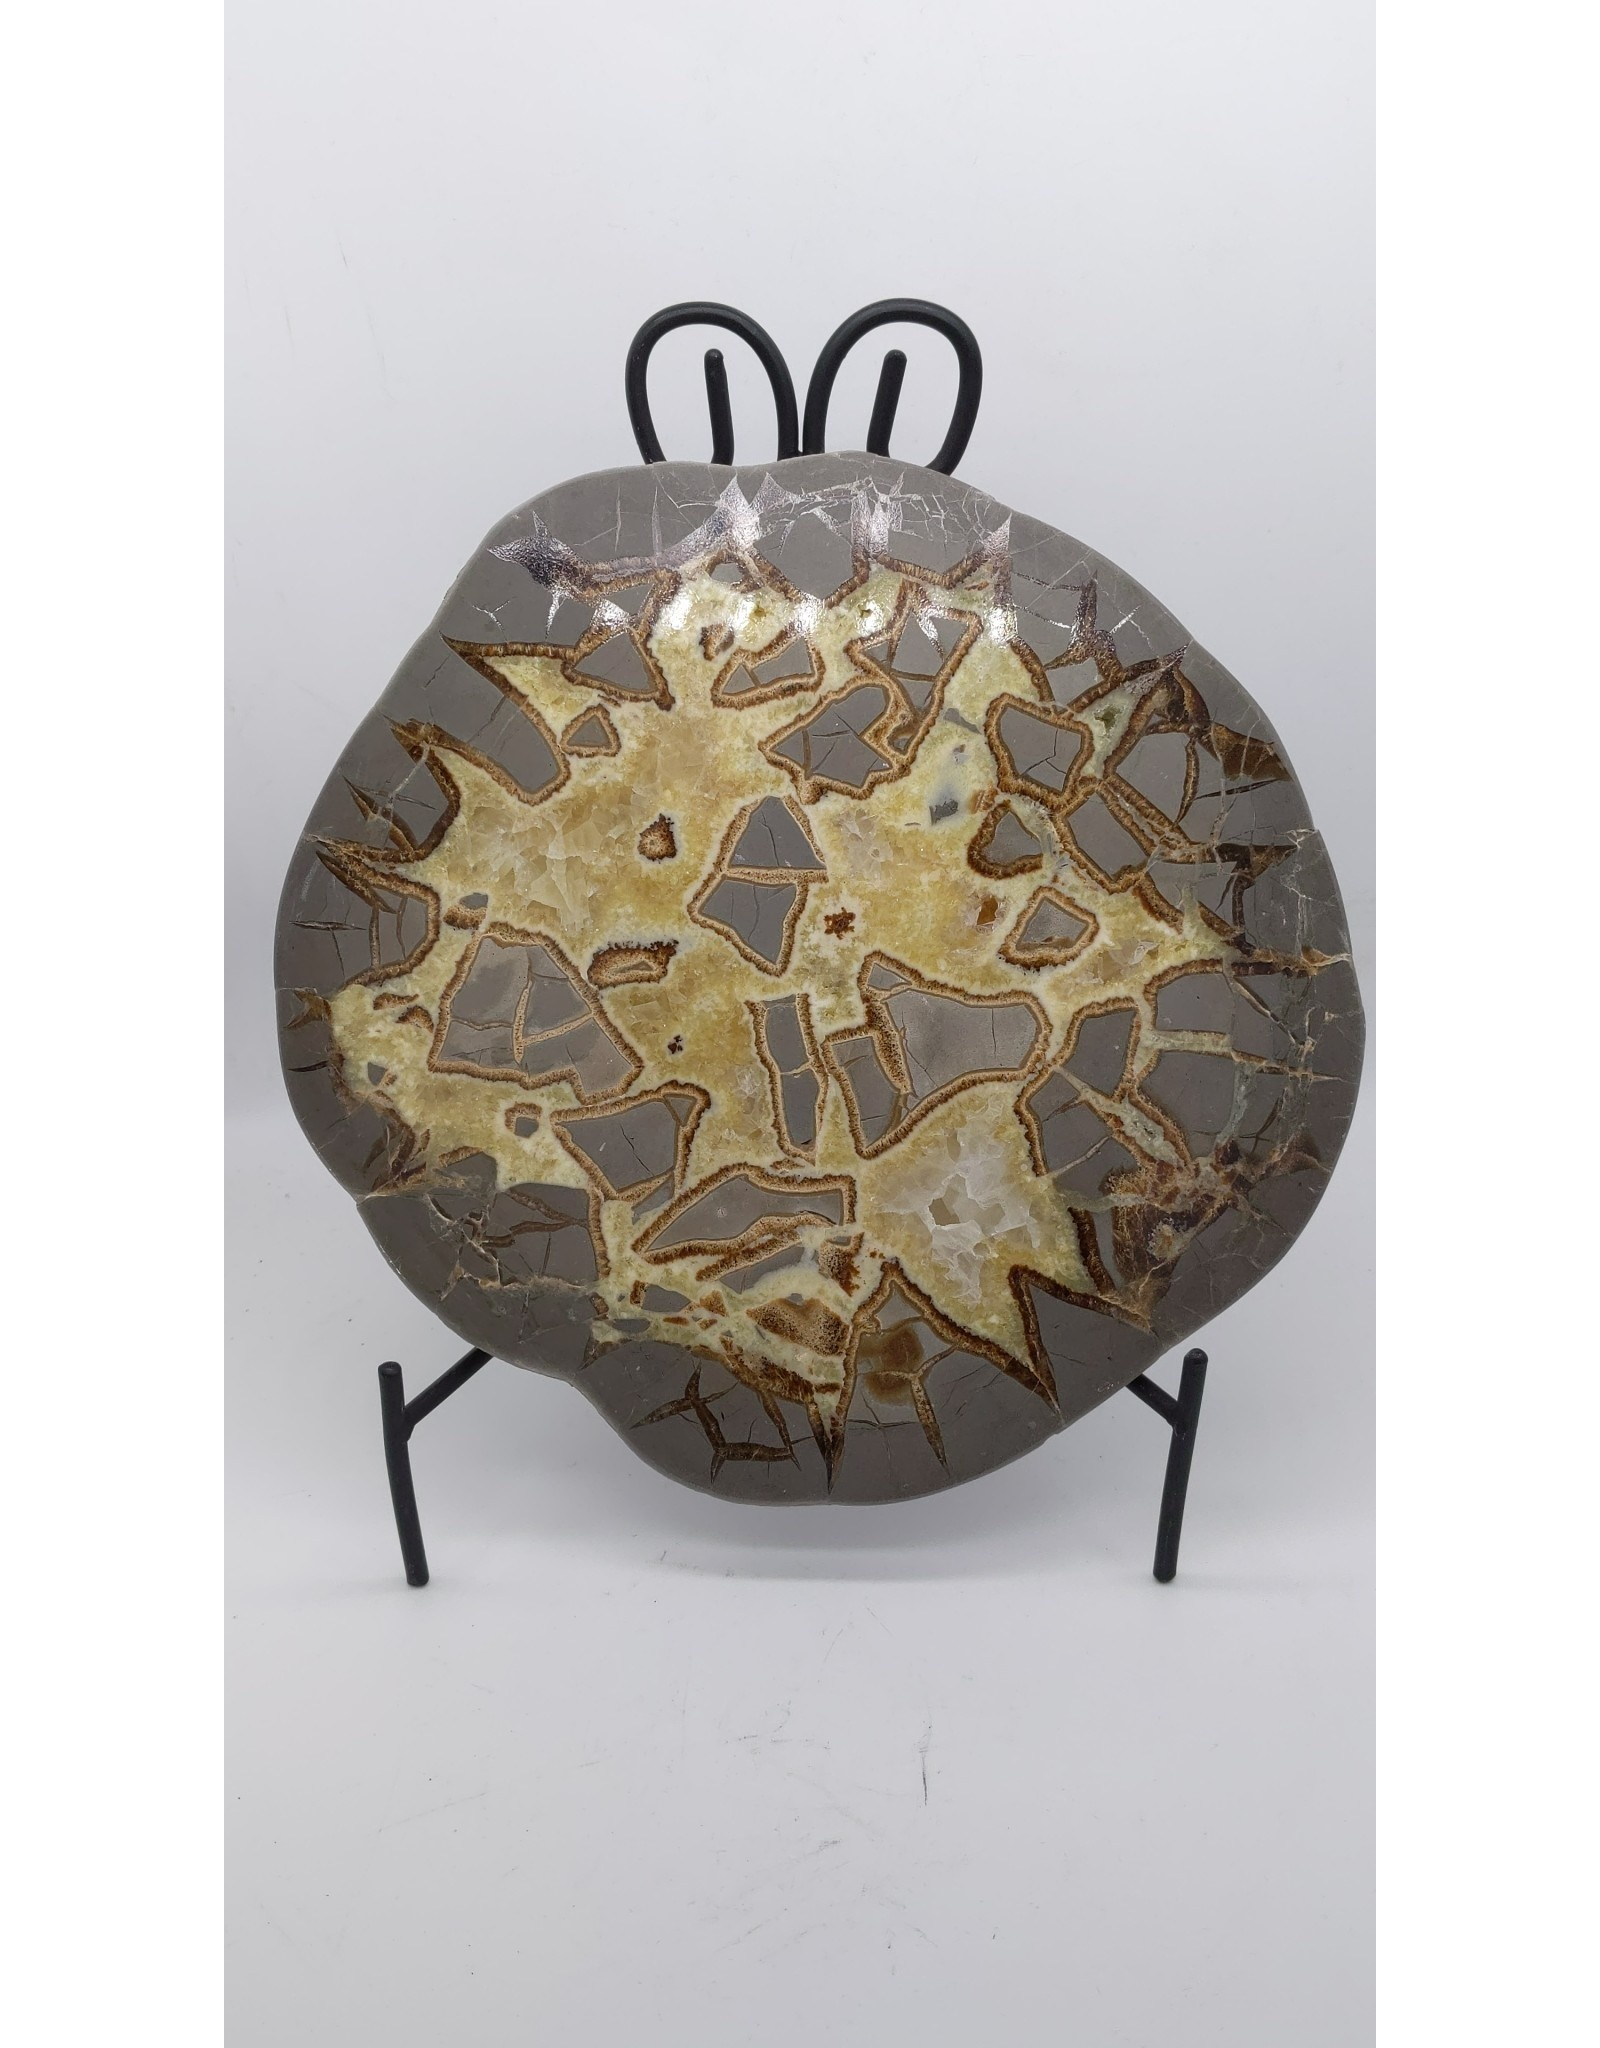 Septarian Slice with Polished Face (Southwest Utah) Limestone, Aragonite and Calcite